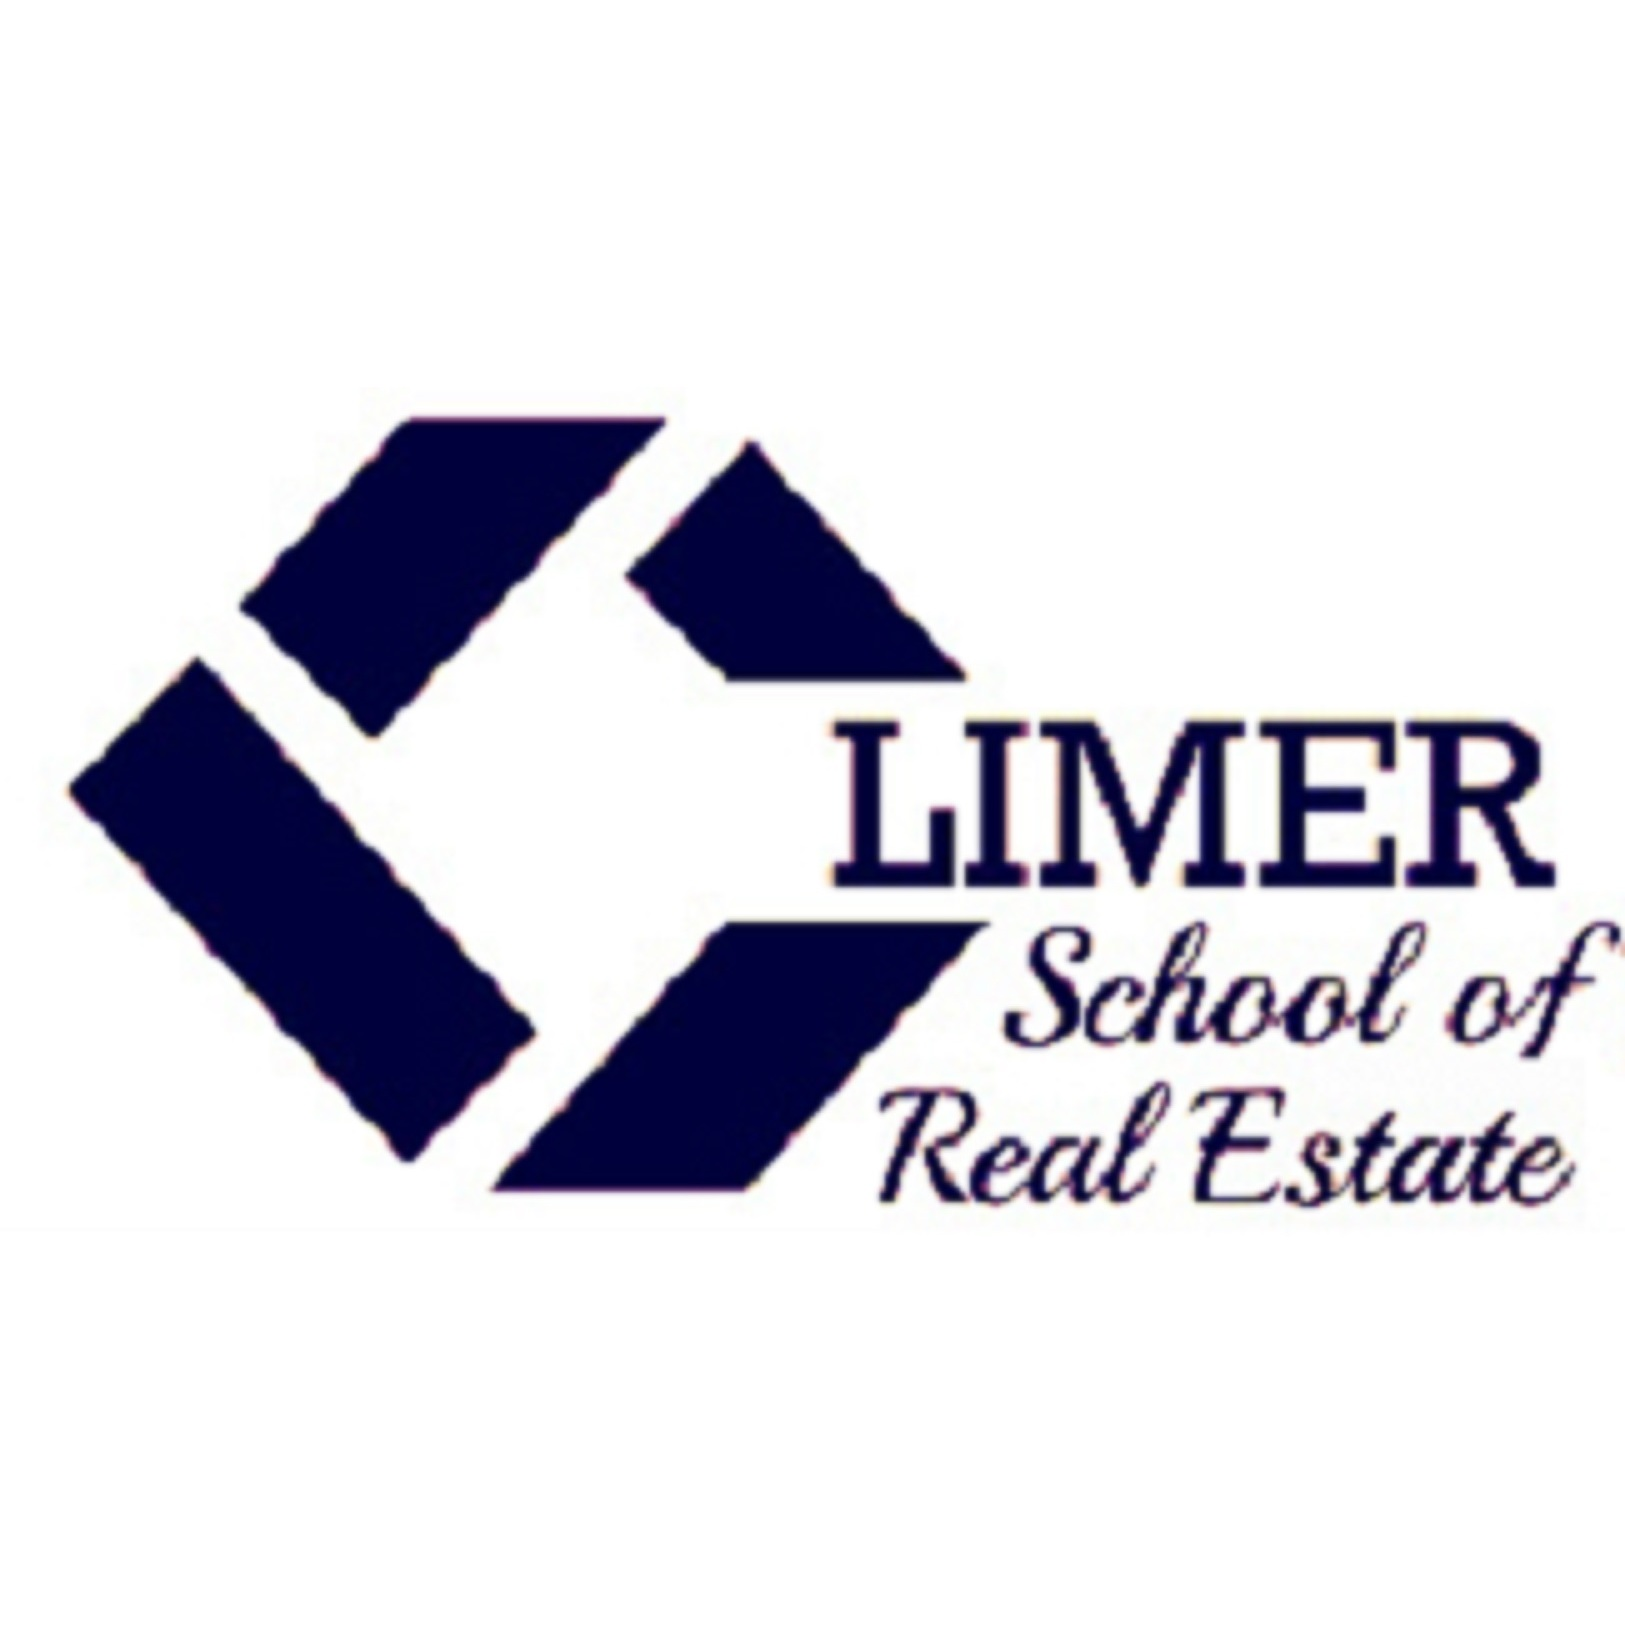 Allied real estate school login